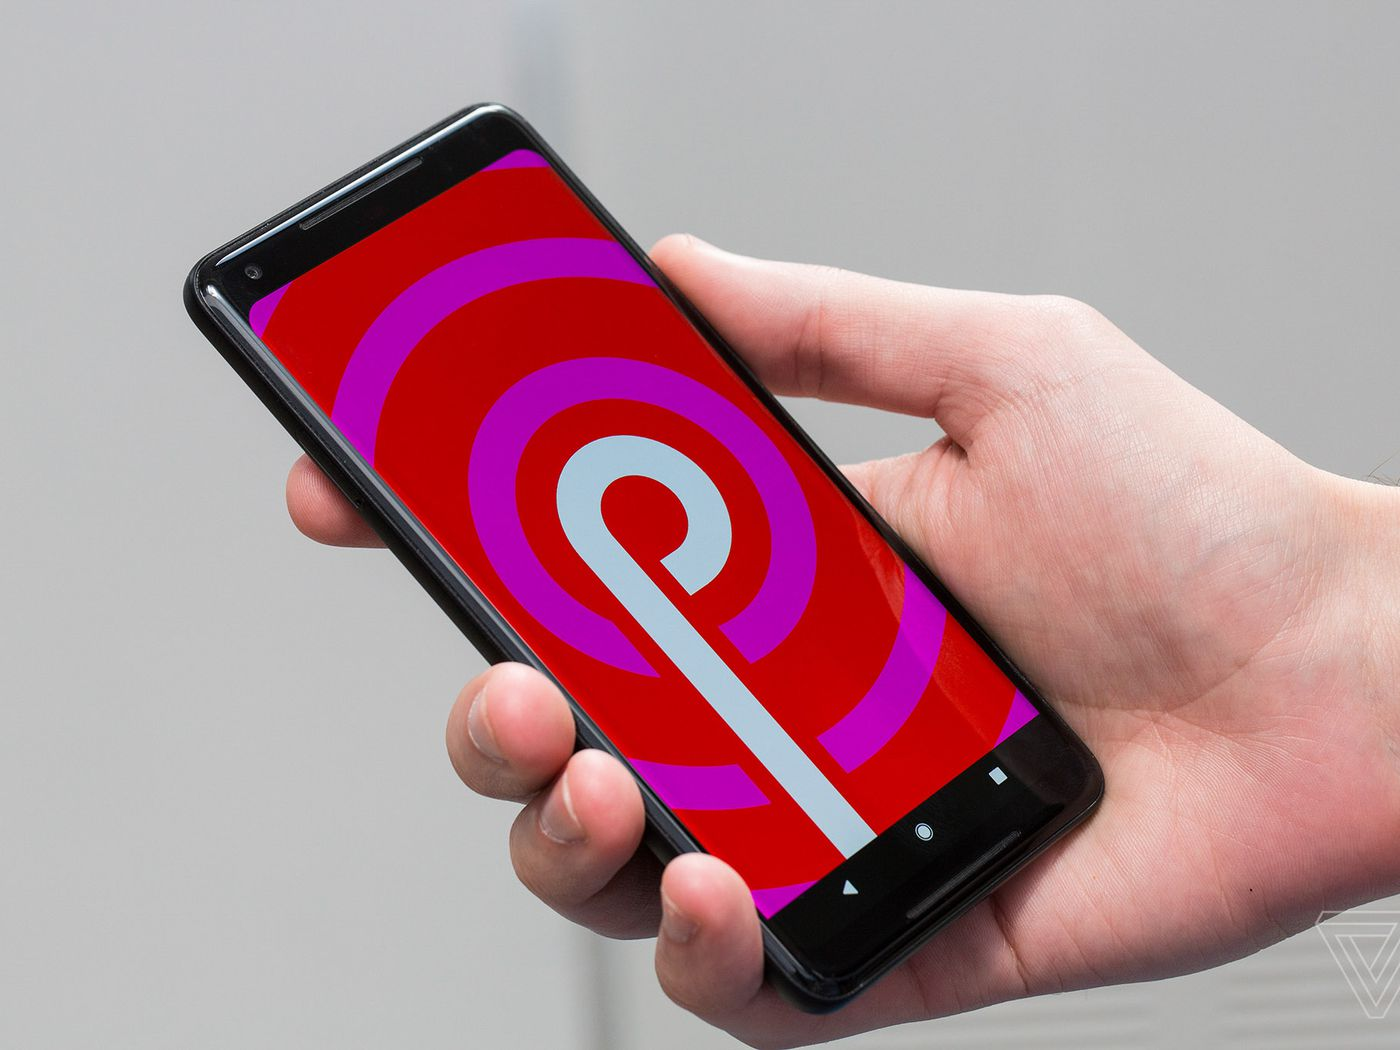 11 useful Android 9 Pie features you shouldn't overlook - The Verge